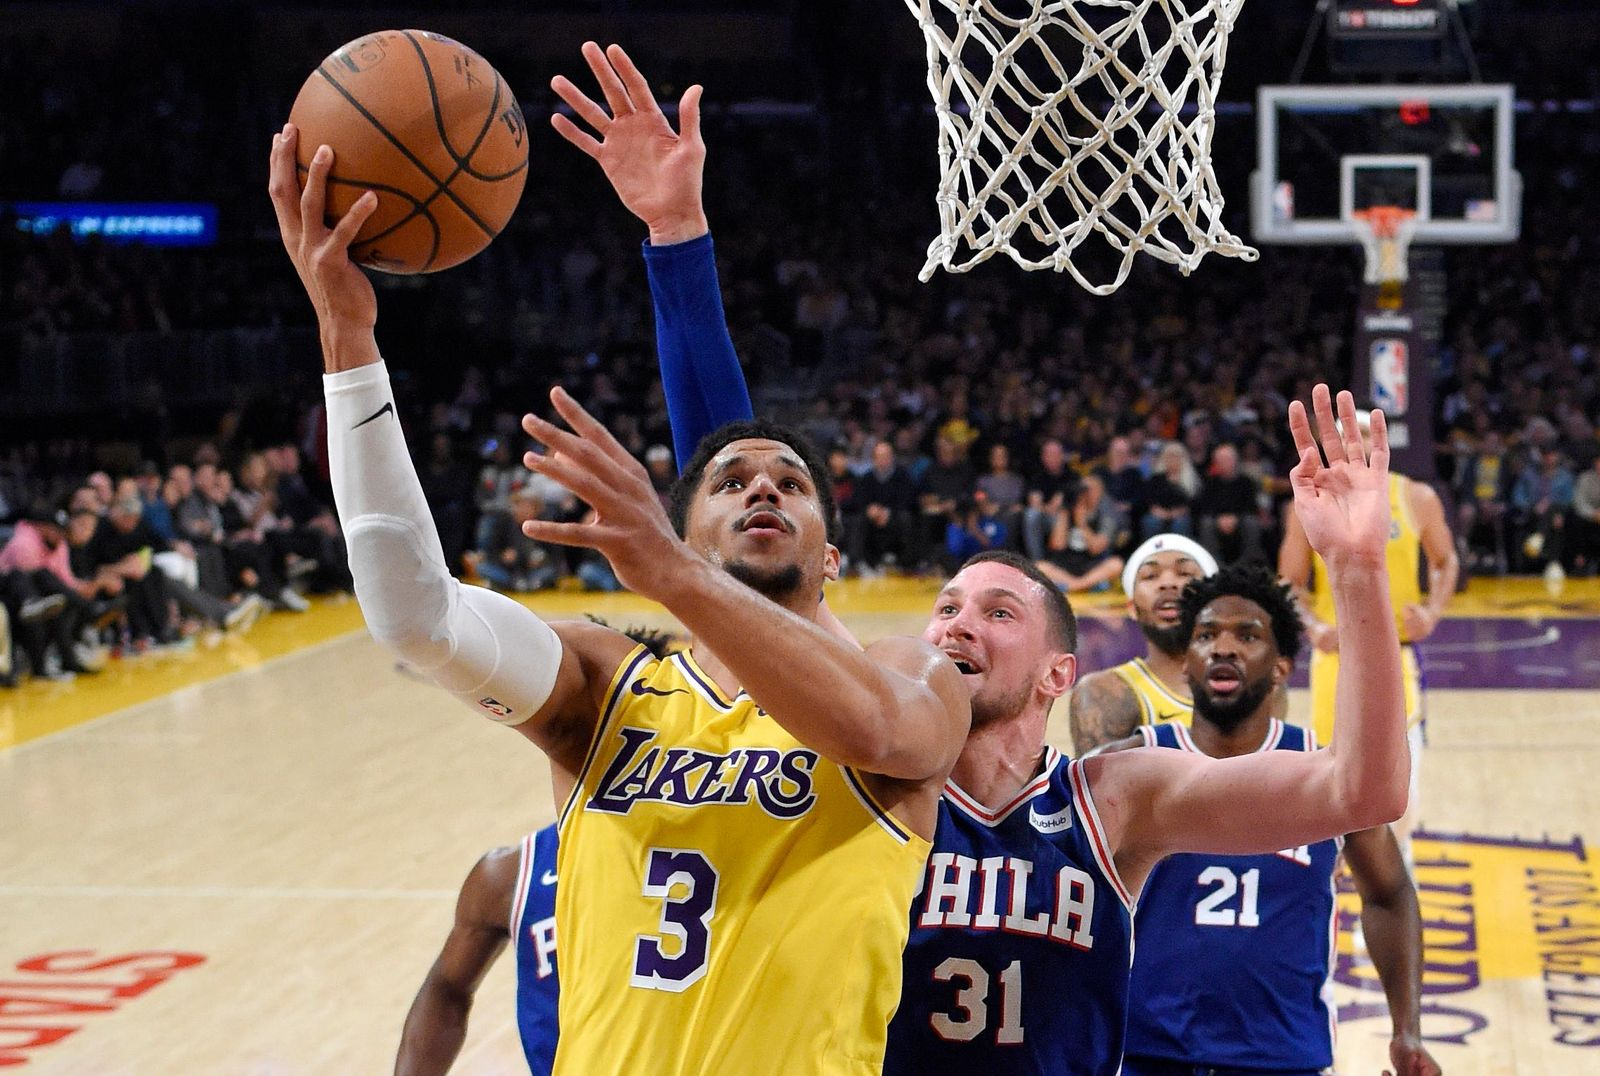 FILE - In this Jan. 29, 2019, file photo, Los Angeles Lakers guard Josh Hart, left, shoots as Philadelphia 76ers forward Mike Muscala defends during the second half of an NBA basketball game in Los Angeles. Two people familiar with the situation say the New Orleans Pelicans have agreed to trade six-time All-Star Anthony Davis to the Lakers for point guard Lonzo Ball, forward Brandon Ingram, Hart and three first-round draft choices. The people spoke to The Associated Press on condition of anonymity because the trade cannot become official until the new league year begins July 6. ESPN first reported the trade. (AP Photo/Mark J. Terrill, File)